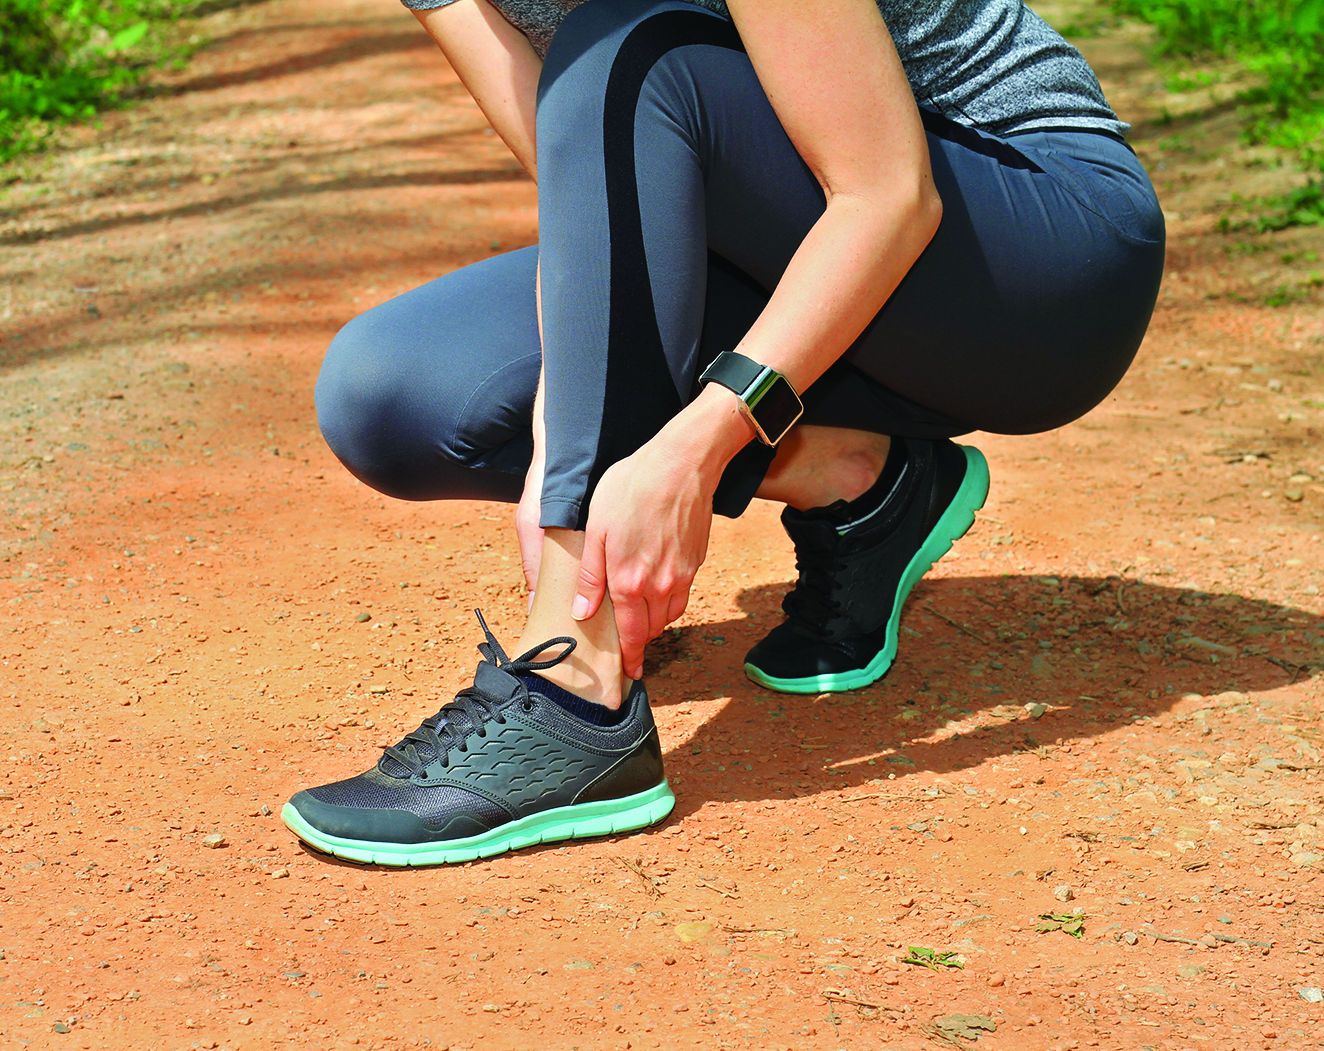 Exercise Overload: Tips for Avoiding Stress Fractures